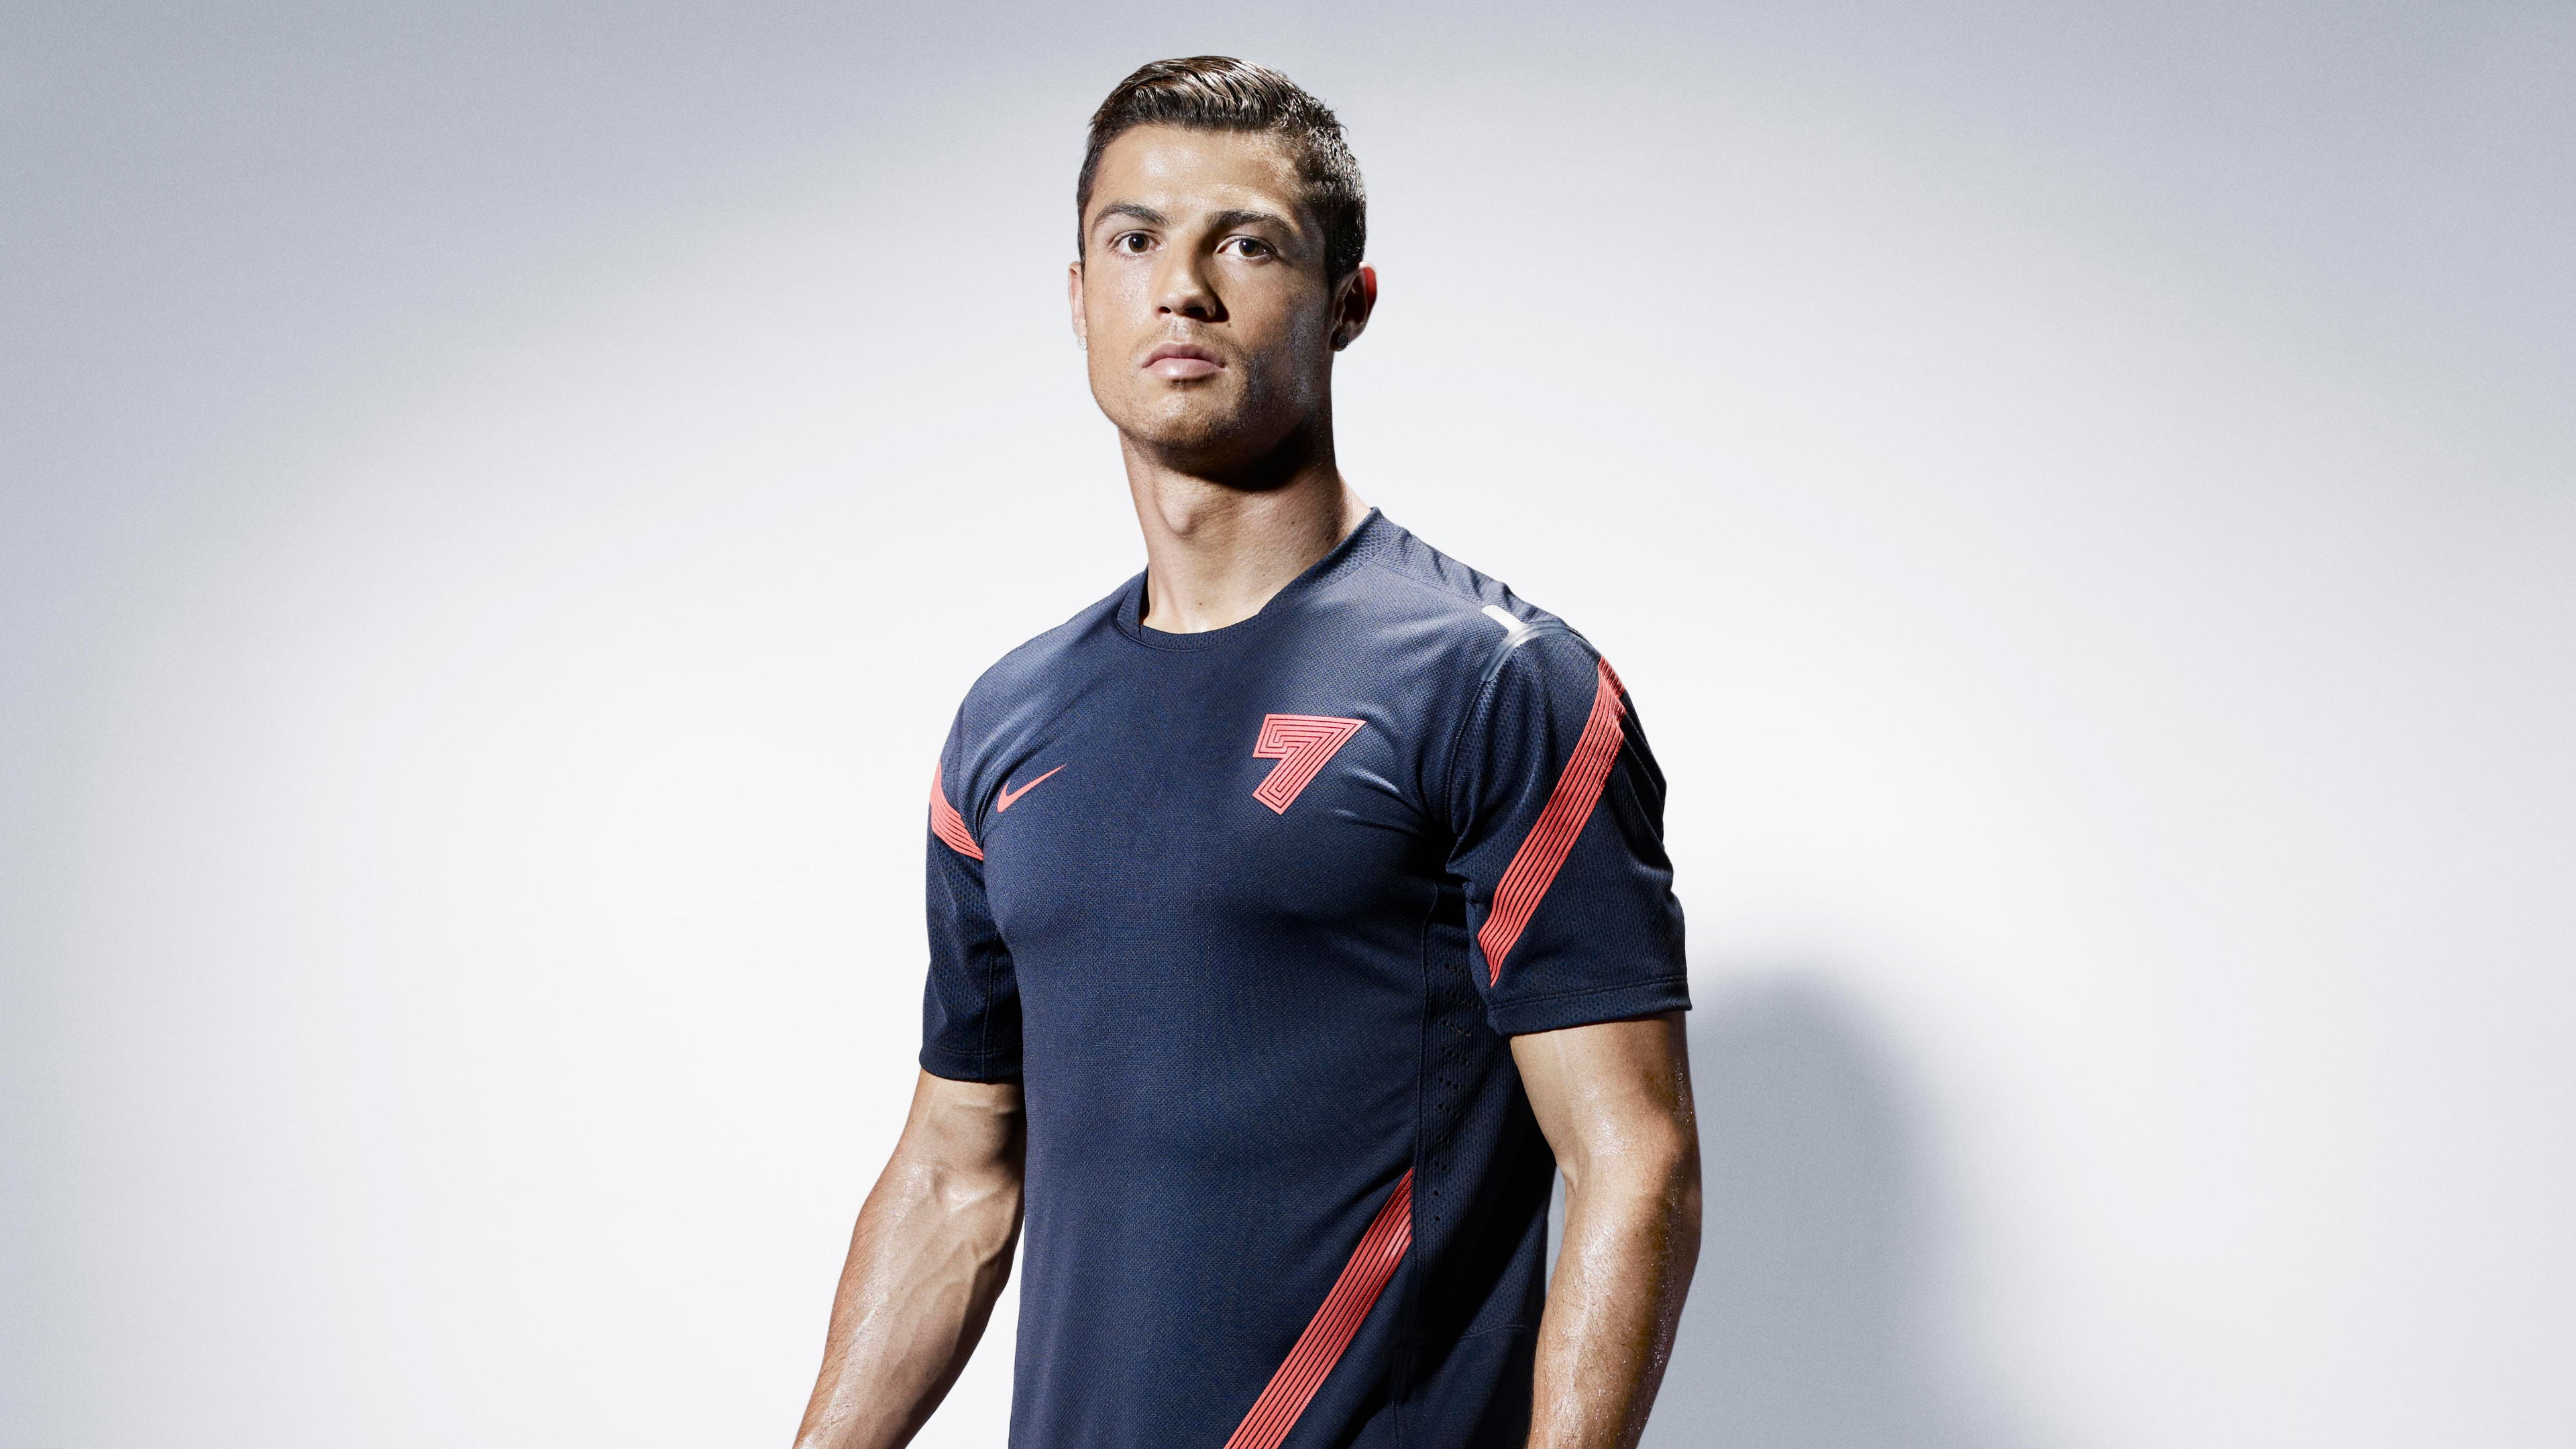 cristiano ronaldo nike 4k 1547938830 - Cristiano Ronaldo Nike 4k - sports wallpapers, male celebrities wallpapers, hd-wallpapers, football wallpapers, cristiano ronaldo wallpapers, boys wallpapers, 5k wallpapers, 4k-wallpapers